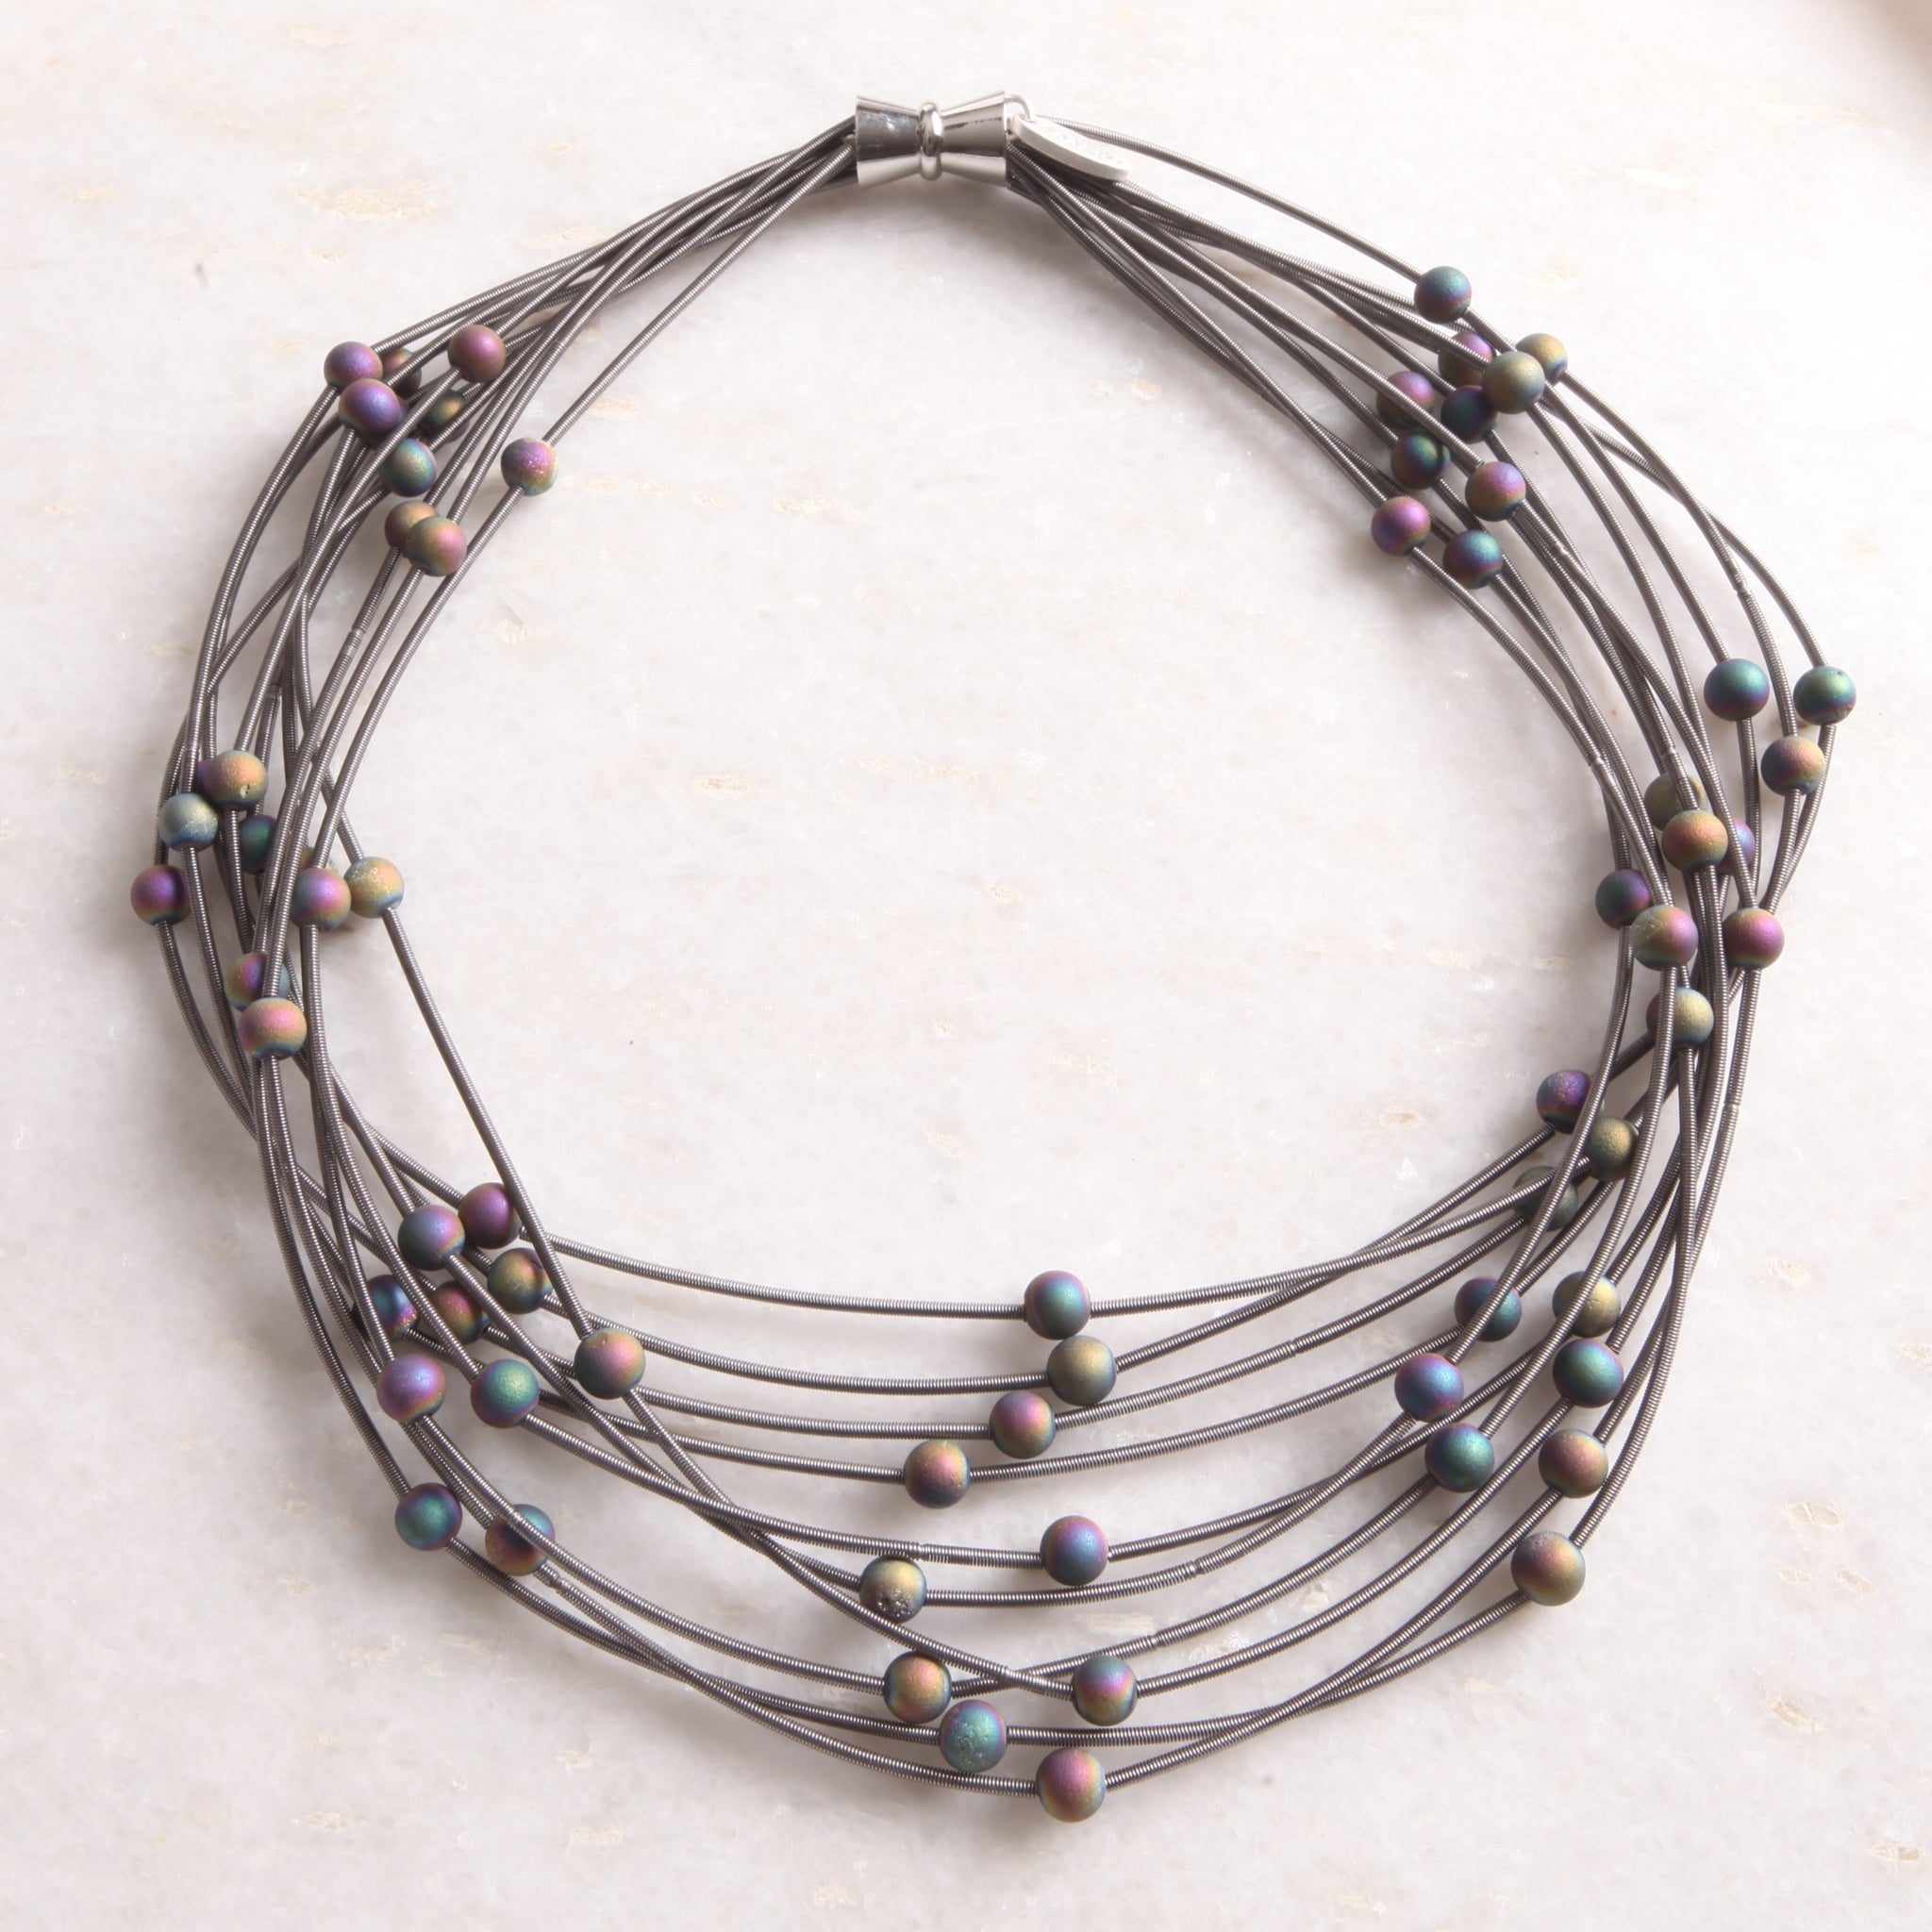 Slate & Iridescent Layer Necklace